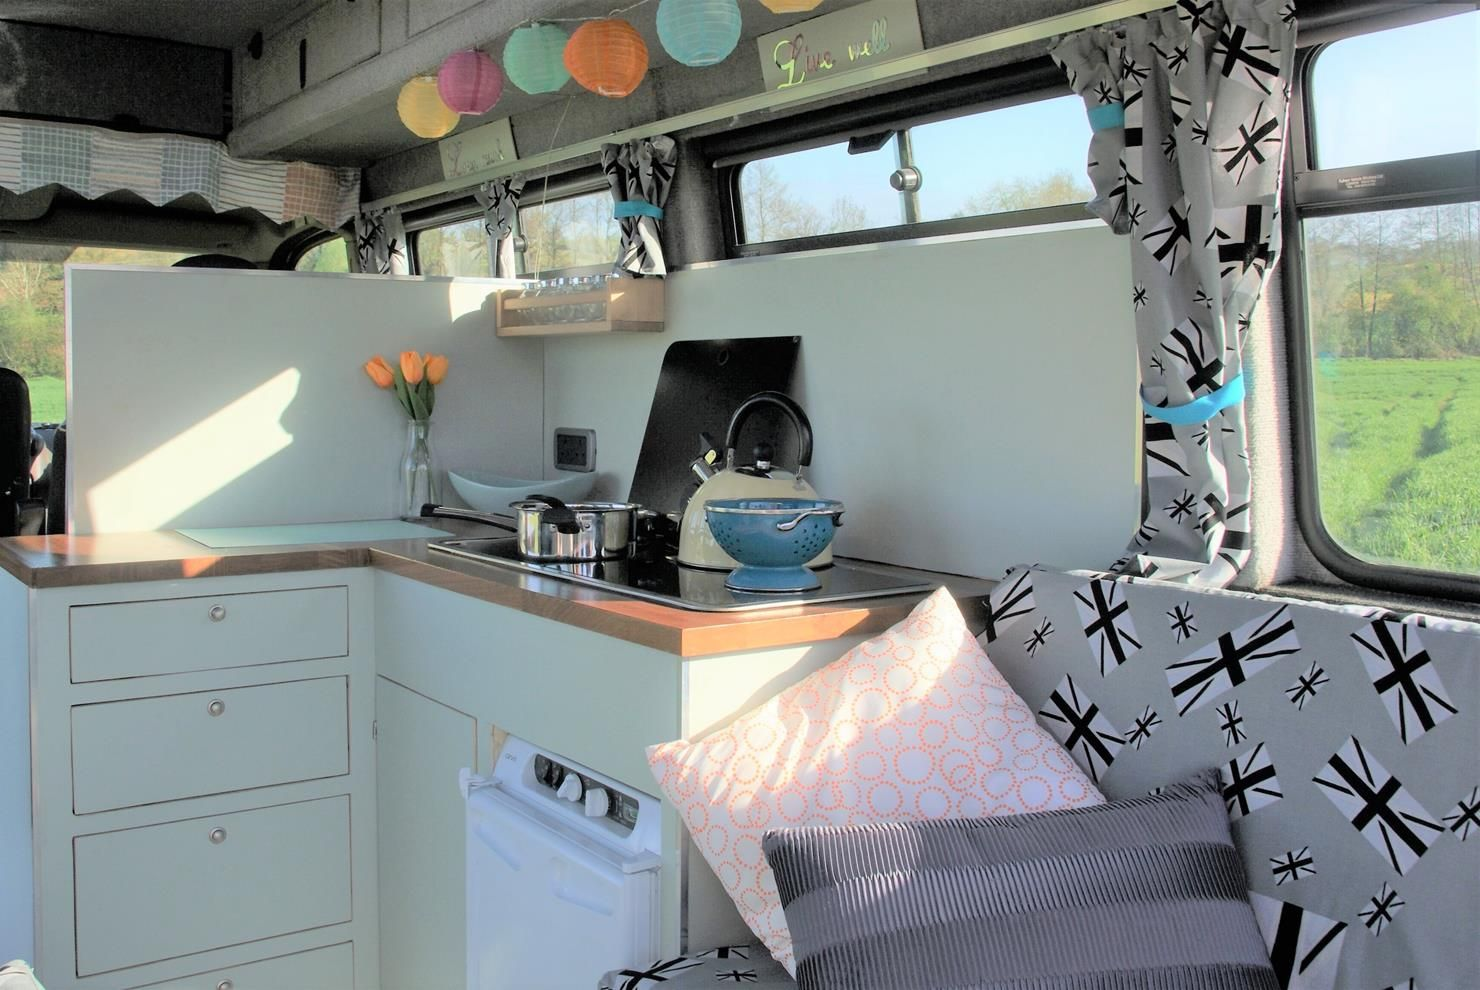 Campervan Sally From Gloucestershire UKs Cool Colours Are So Spring Like And Welcoming